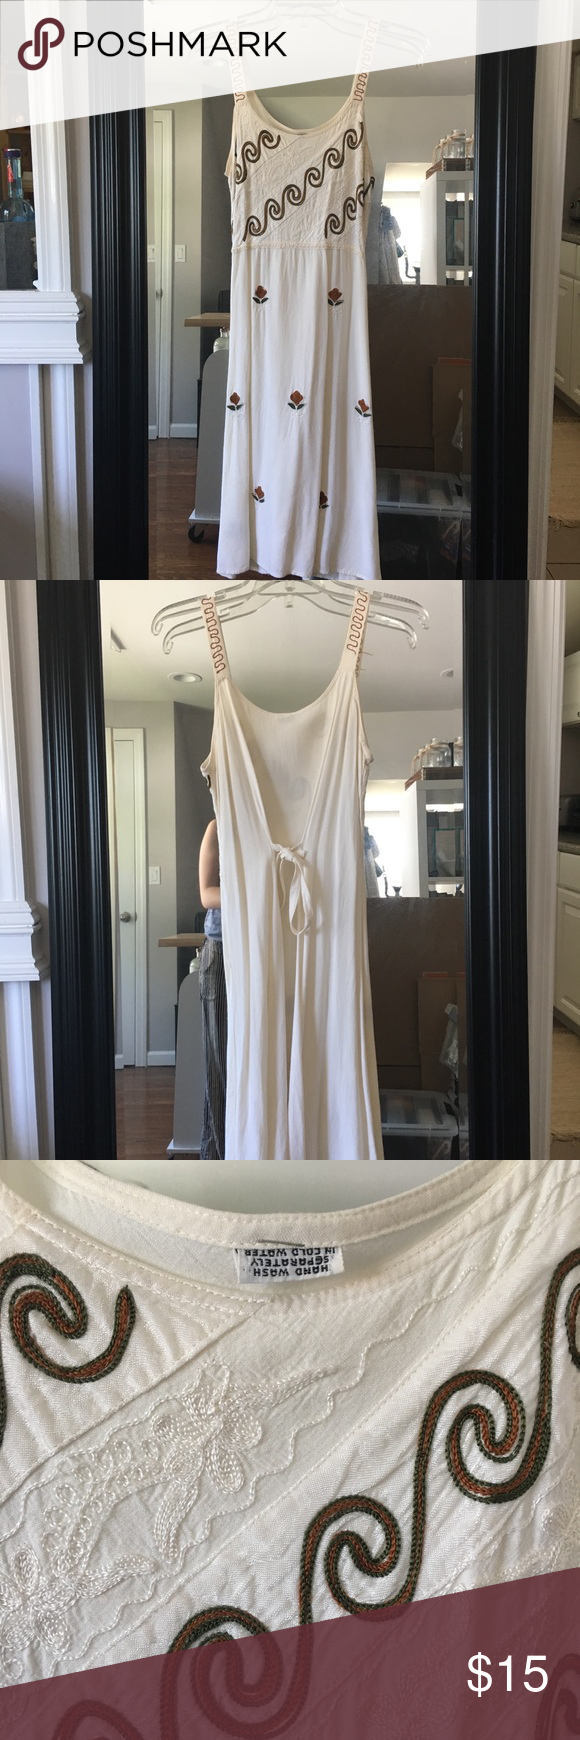 """663145b33aa2 Vintage Handmade Embroidered Beach Dress Vintage Handmade Embroidered Beach  Dress. No brand name. Fits knee length on me (5 3"""") size Small. Tie at back."""